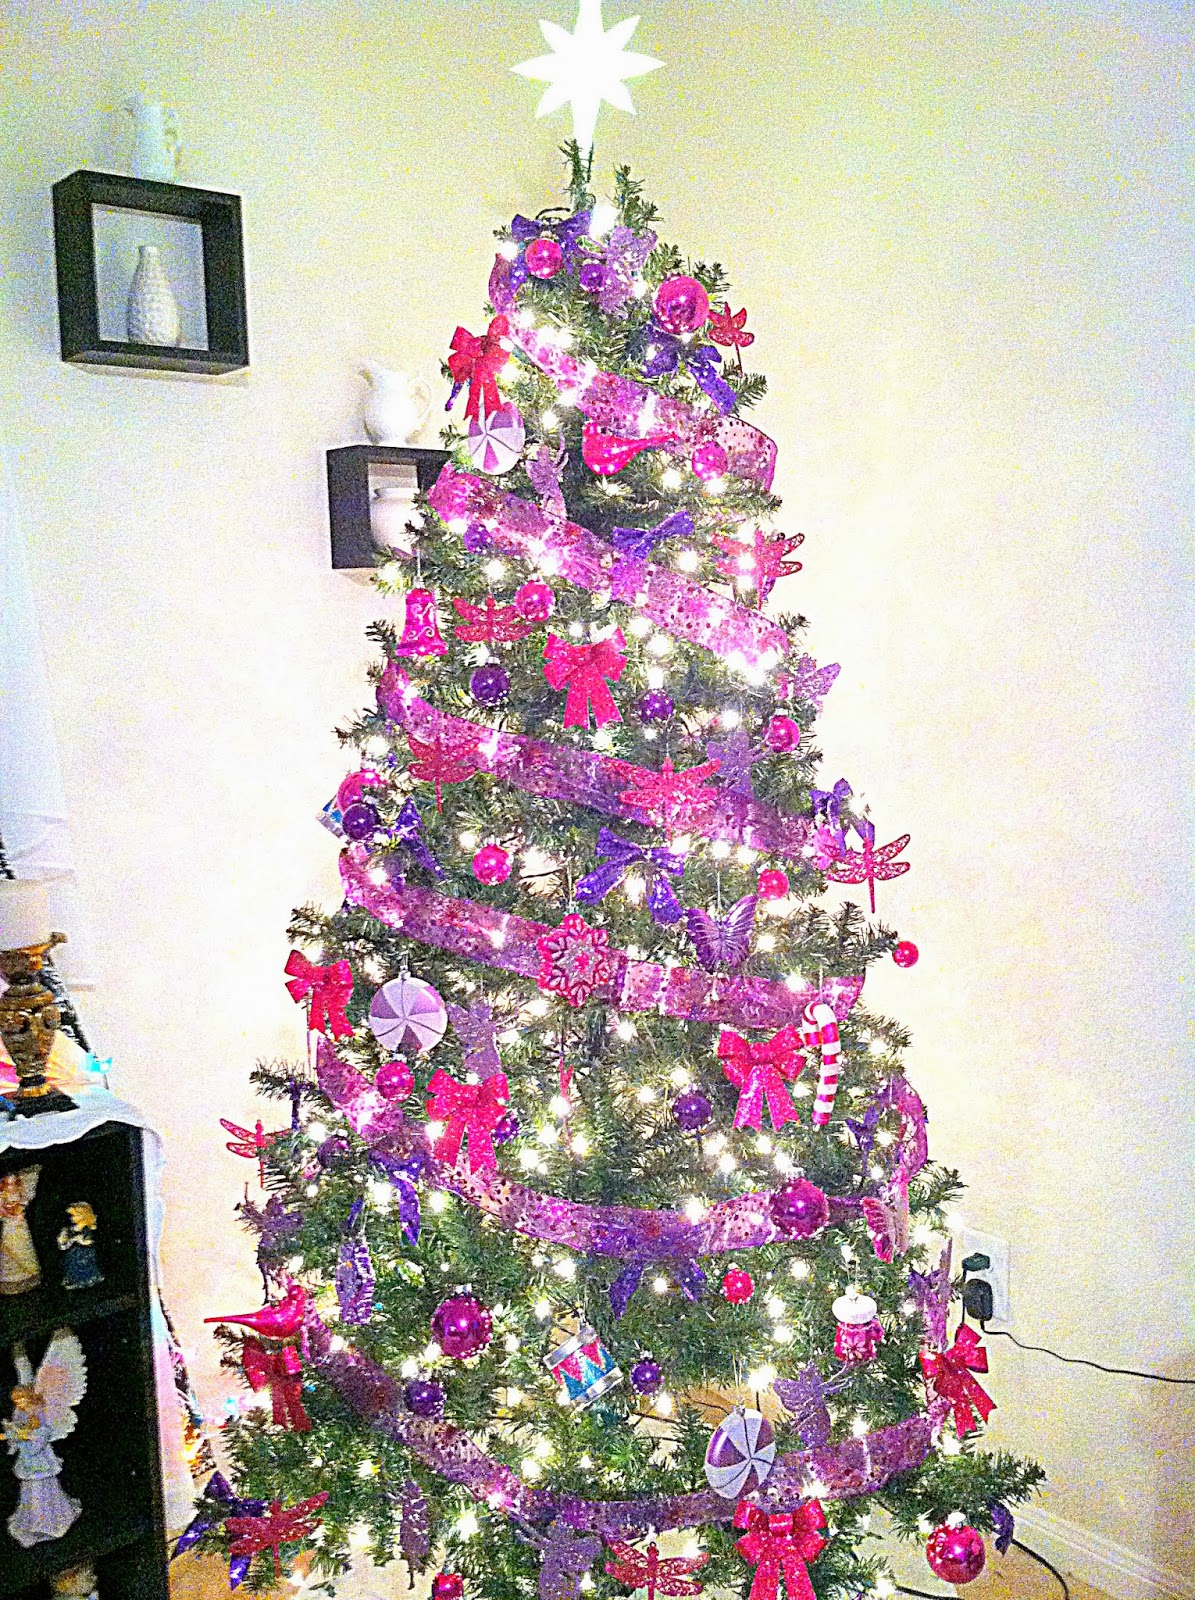 Every Christmas I Always Have A Color Theme For My Tree And So This Year Decided To Go Crazy With Pink Purple